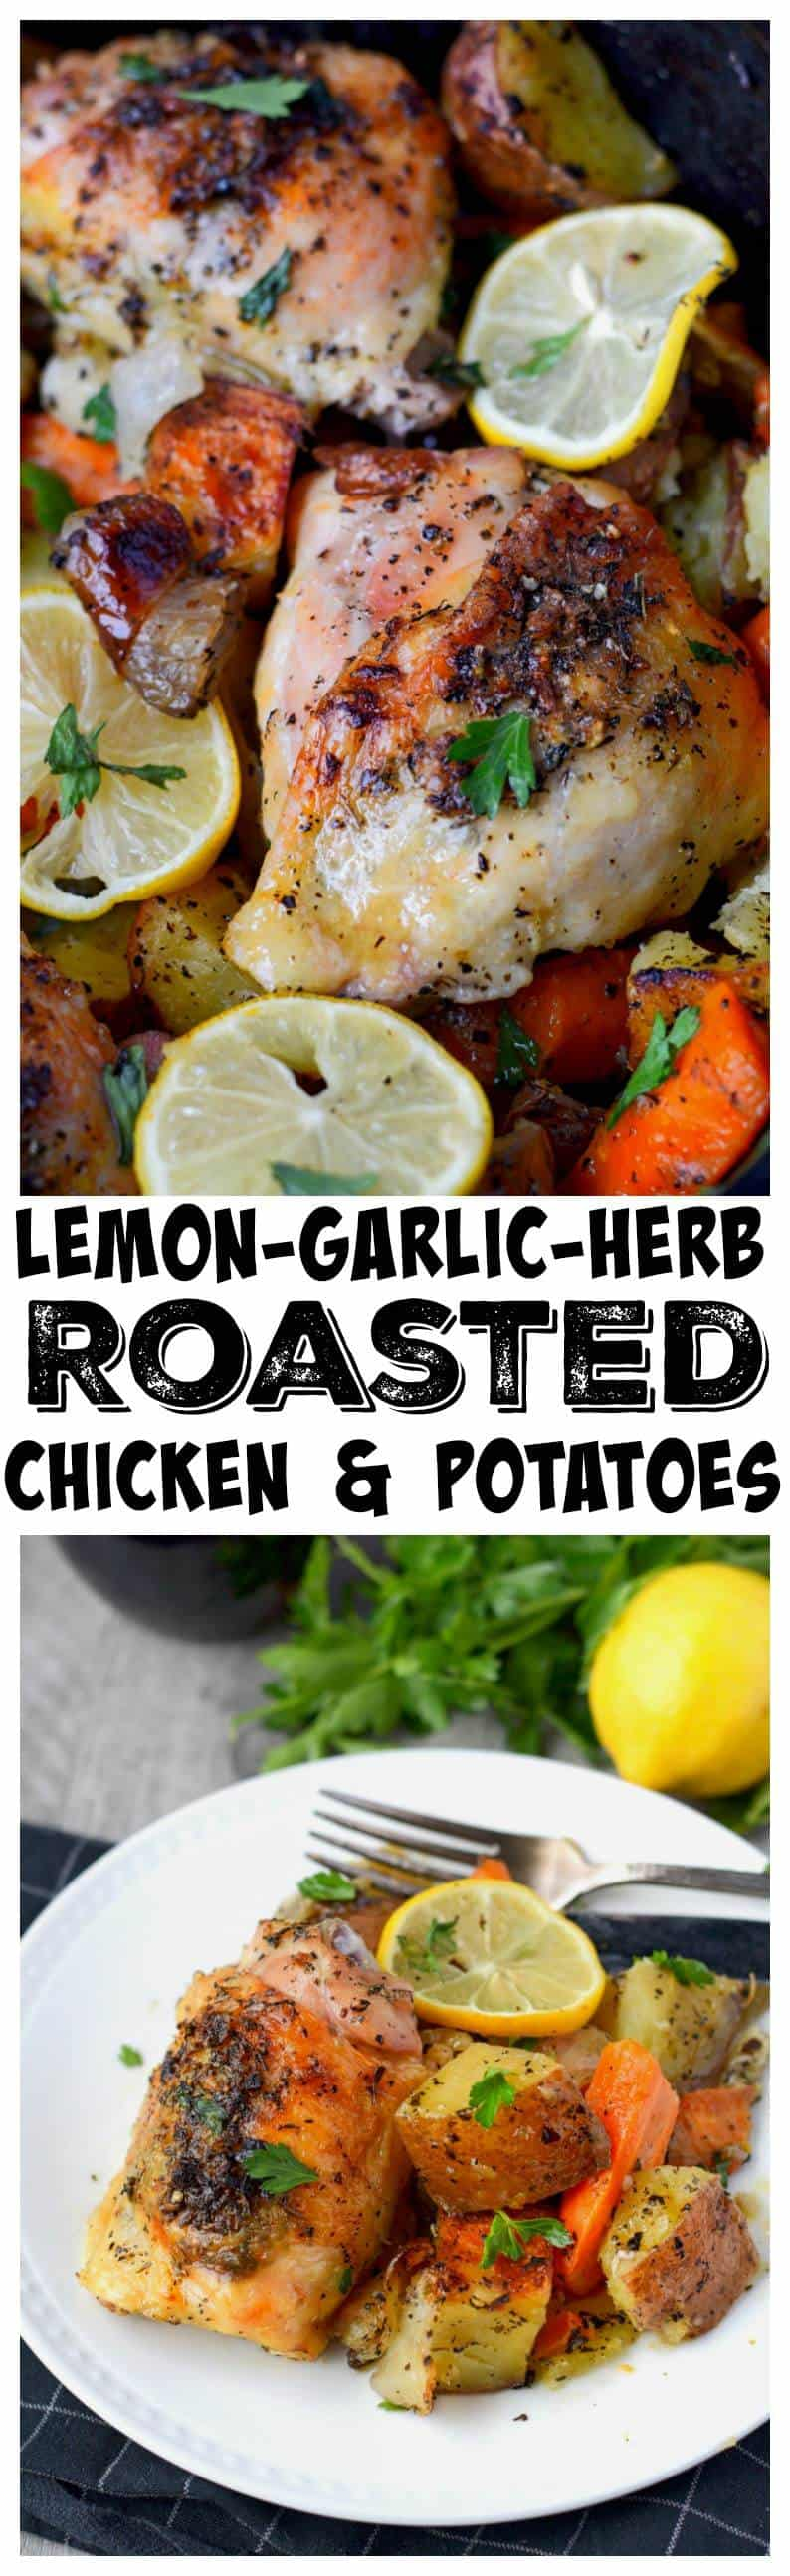 lemon garlic herb roasted chicken and potatoes